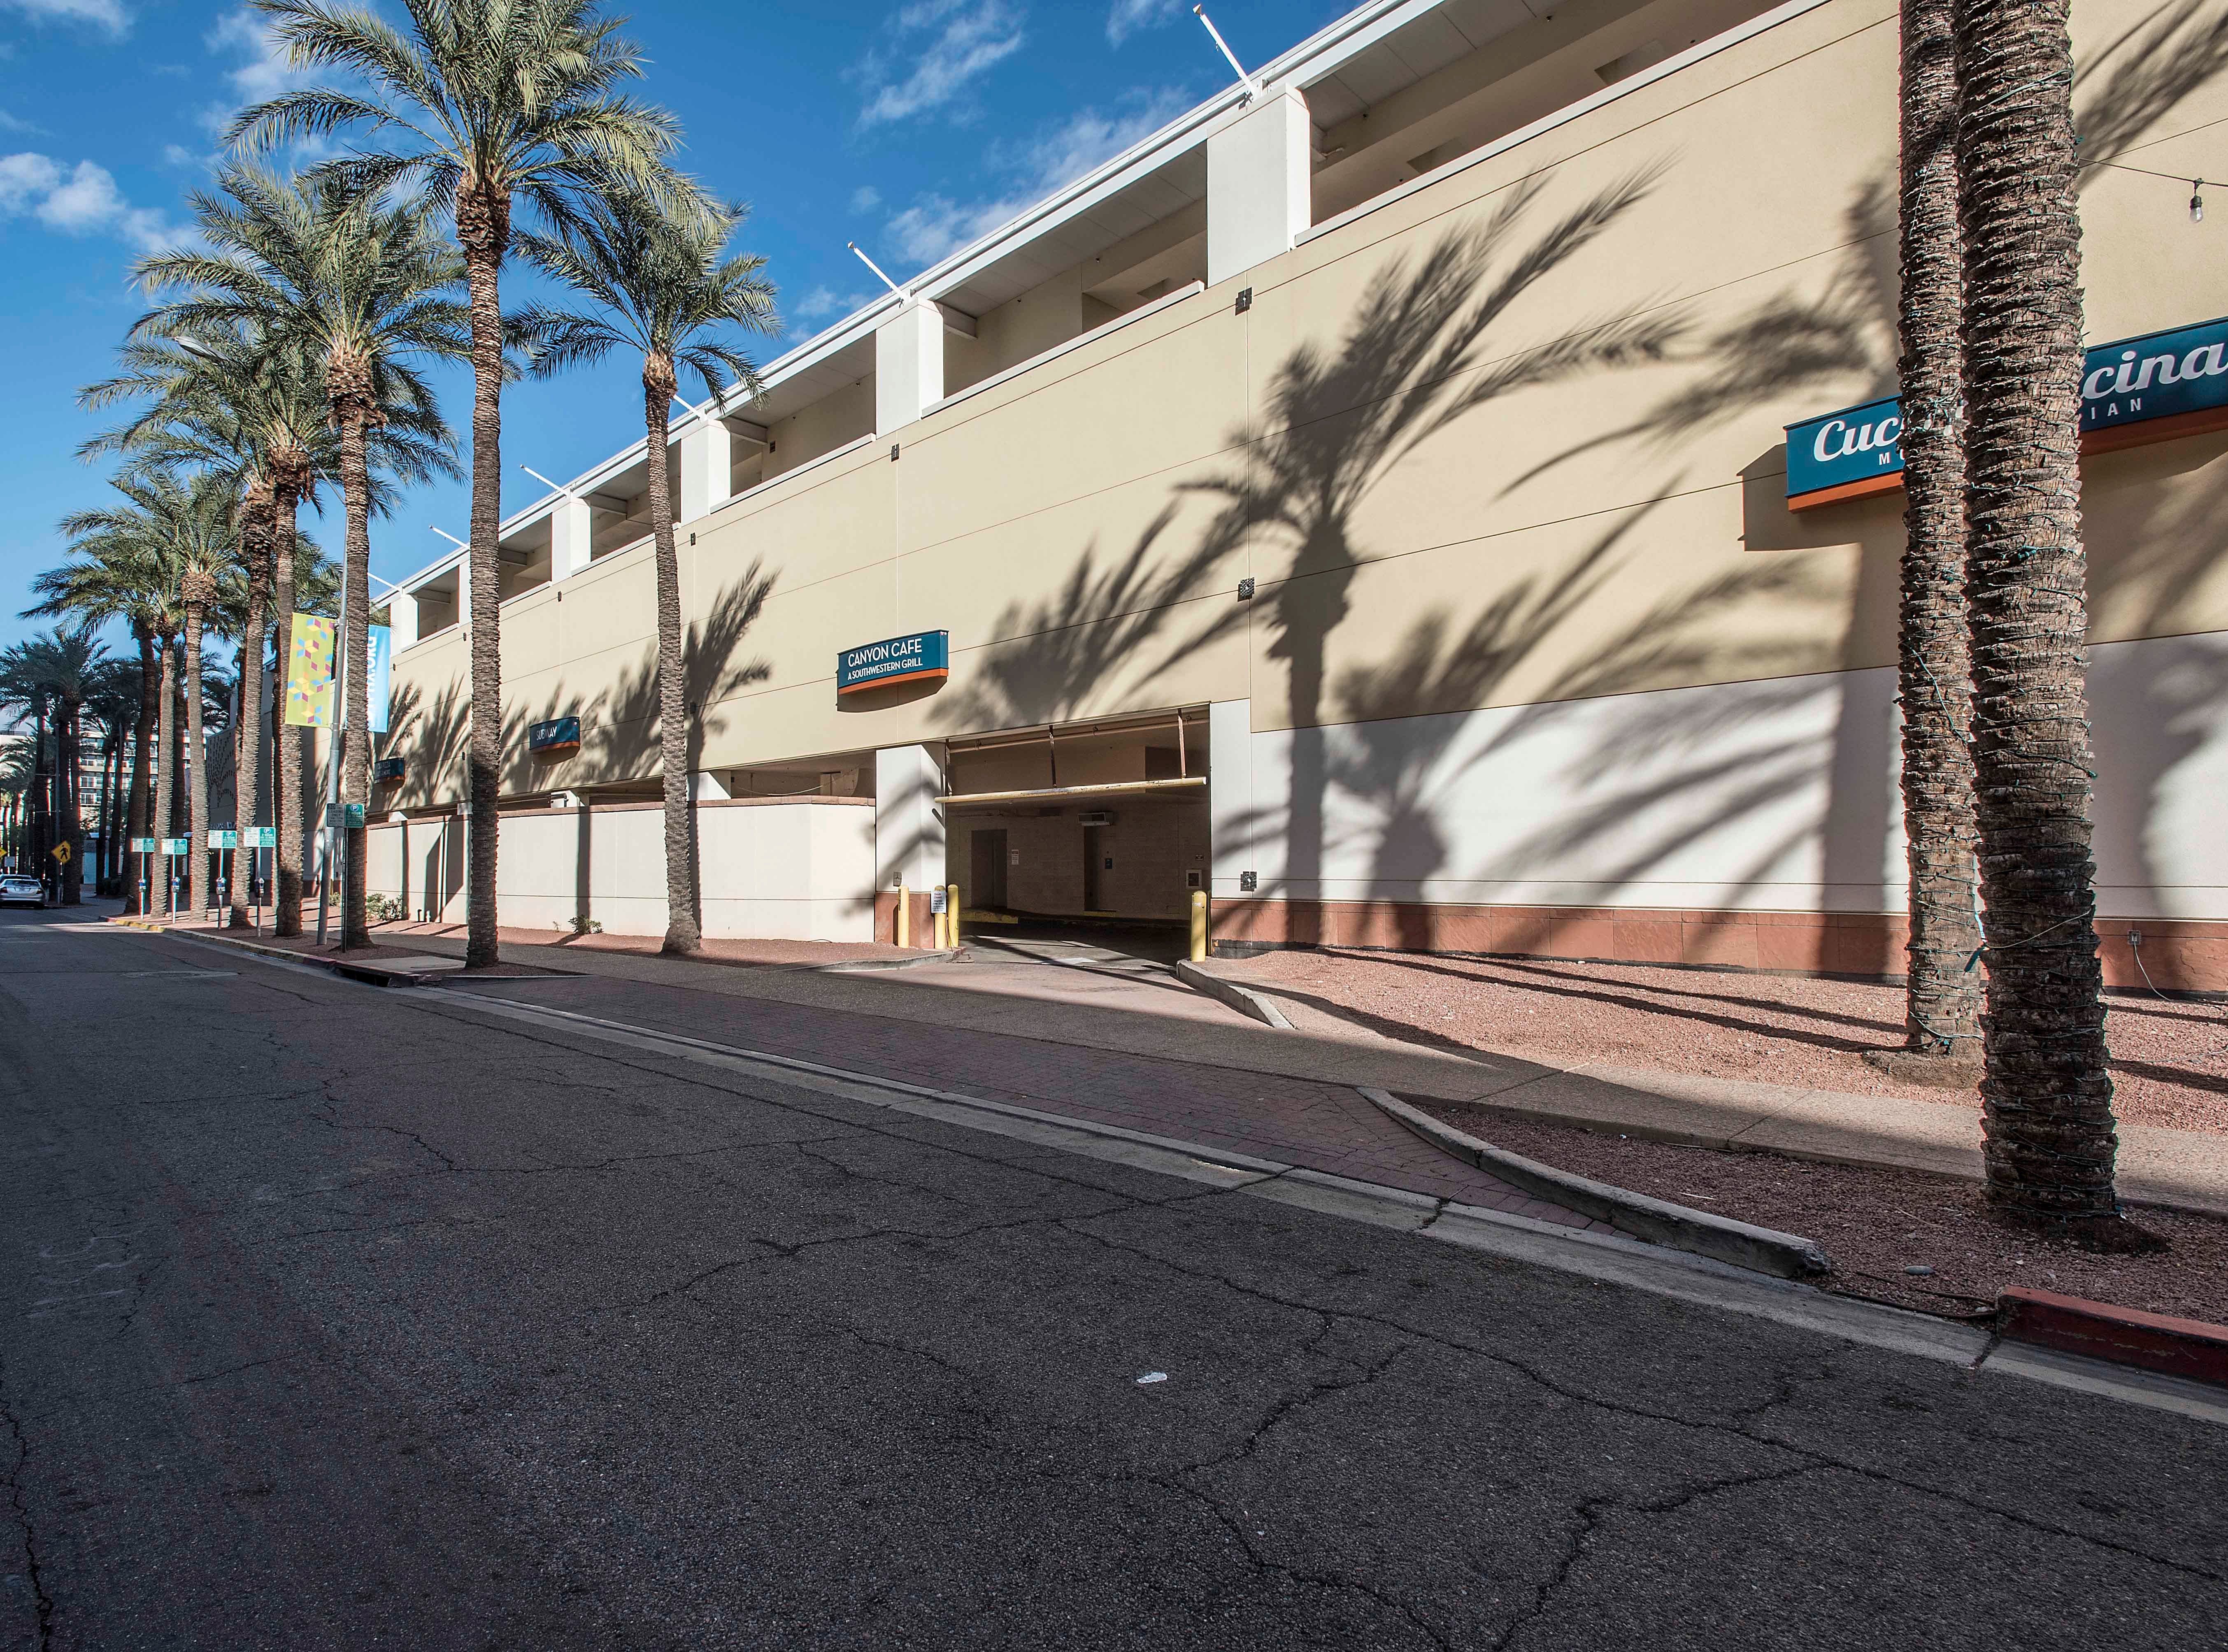 Before renovating, the Arizona Center did not have a valet entrance.